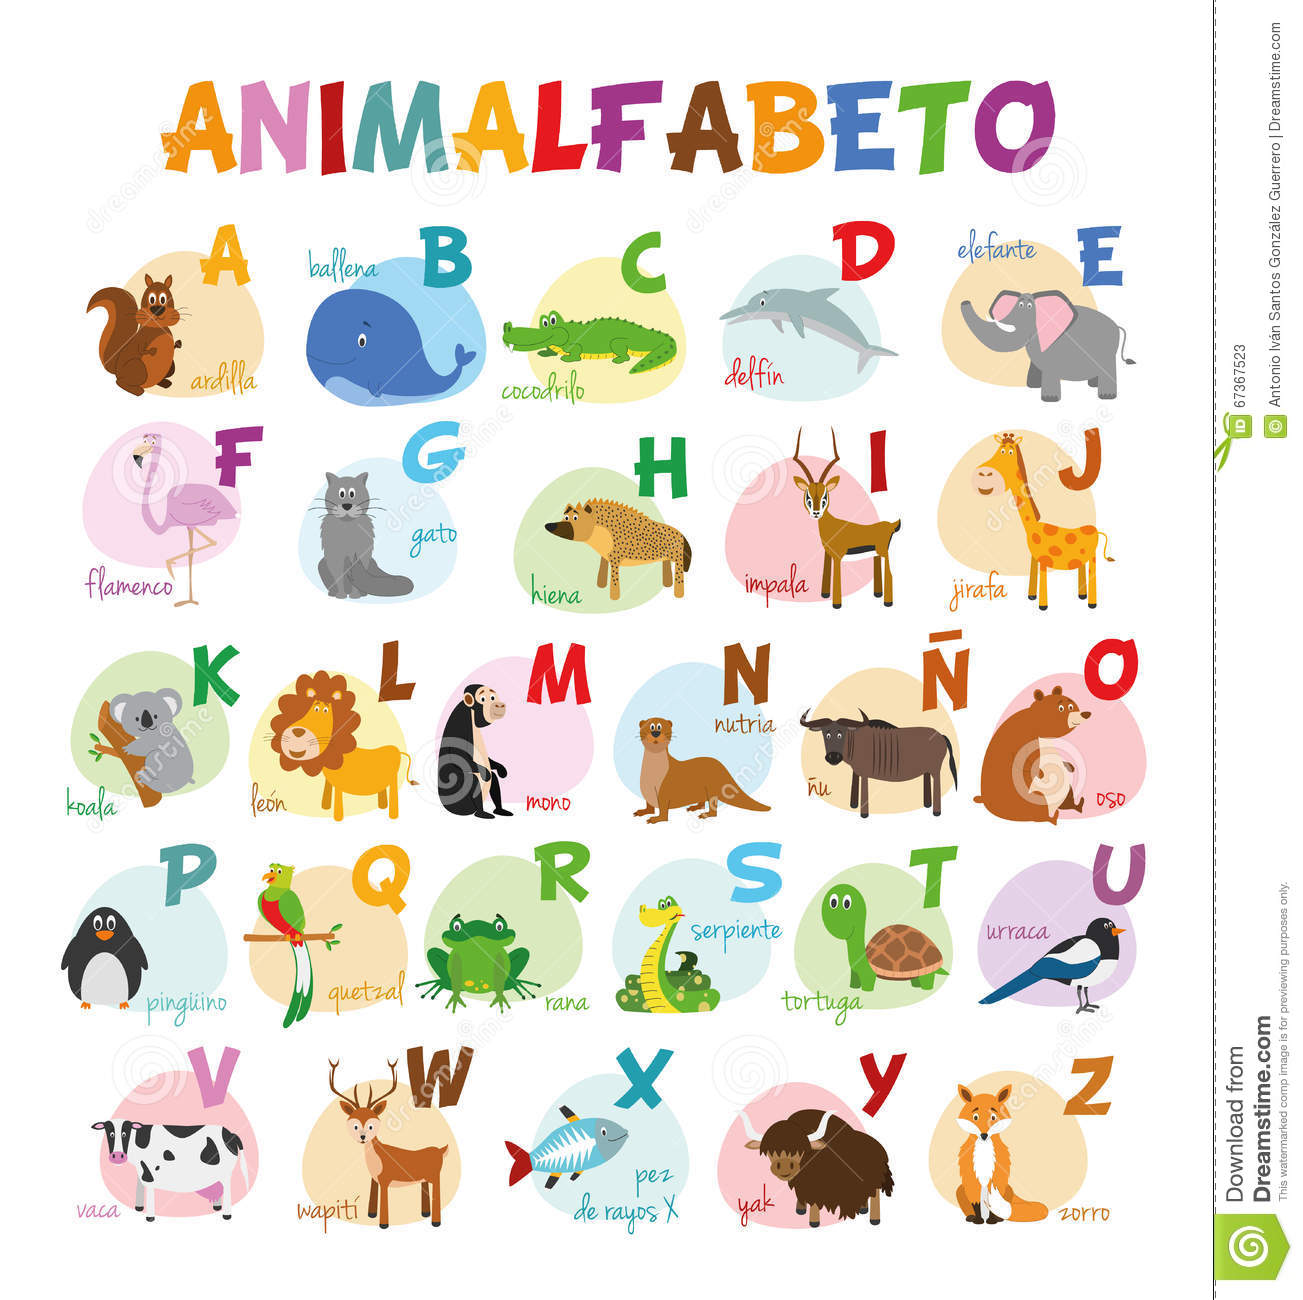 le zoo mignon de bande dessin e a illustr l 39 alphabet avec les animaux dr les alphabet espagnol. Black Bedroom Furniture Sets. Home Design Ideas